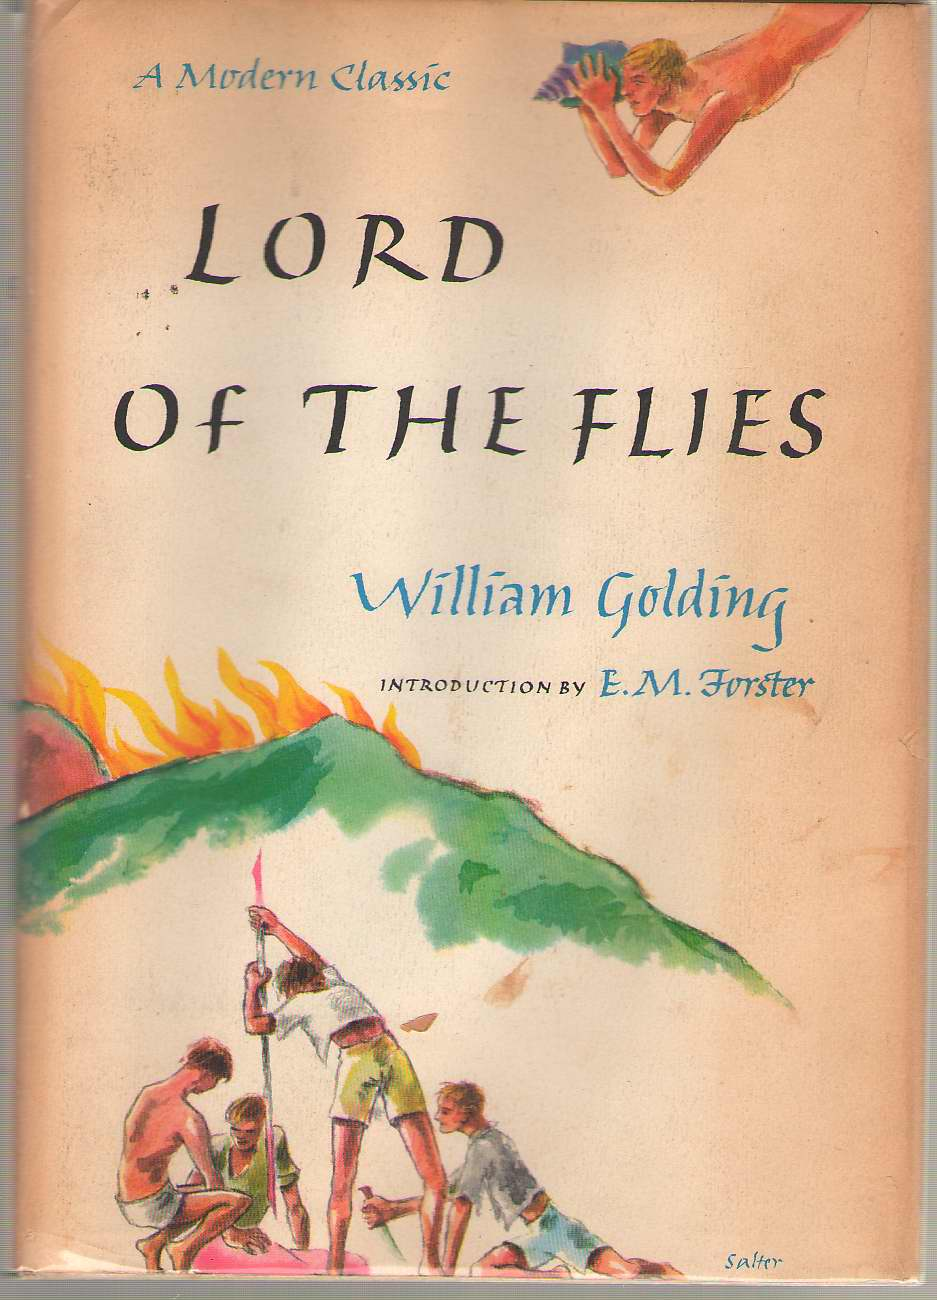 Lord of the Flies, Golding, William; E. M. Forster (Introduction)